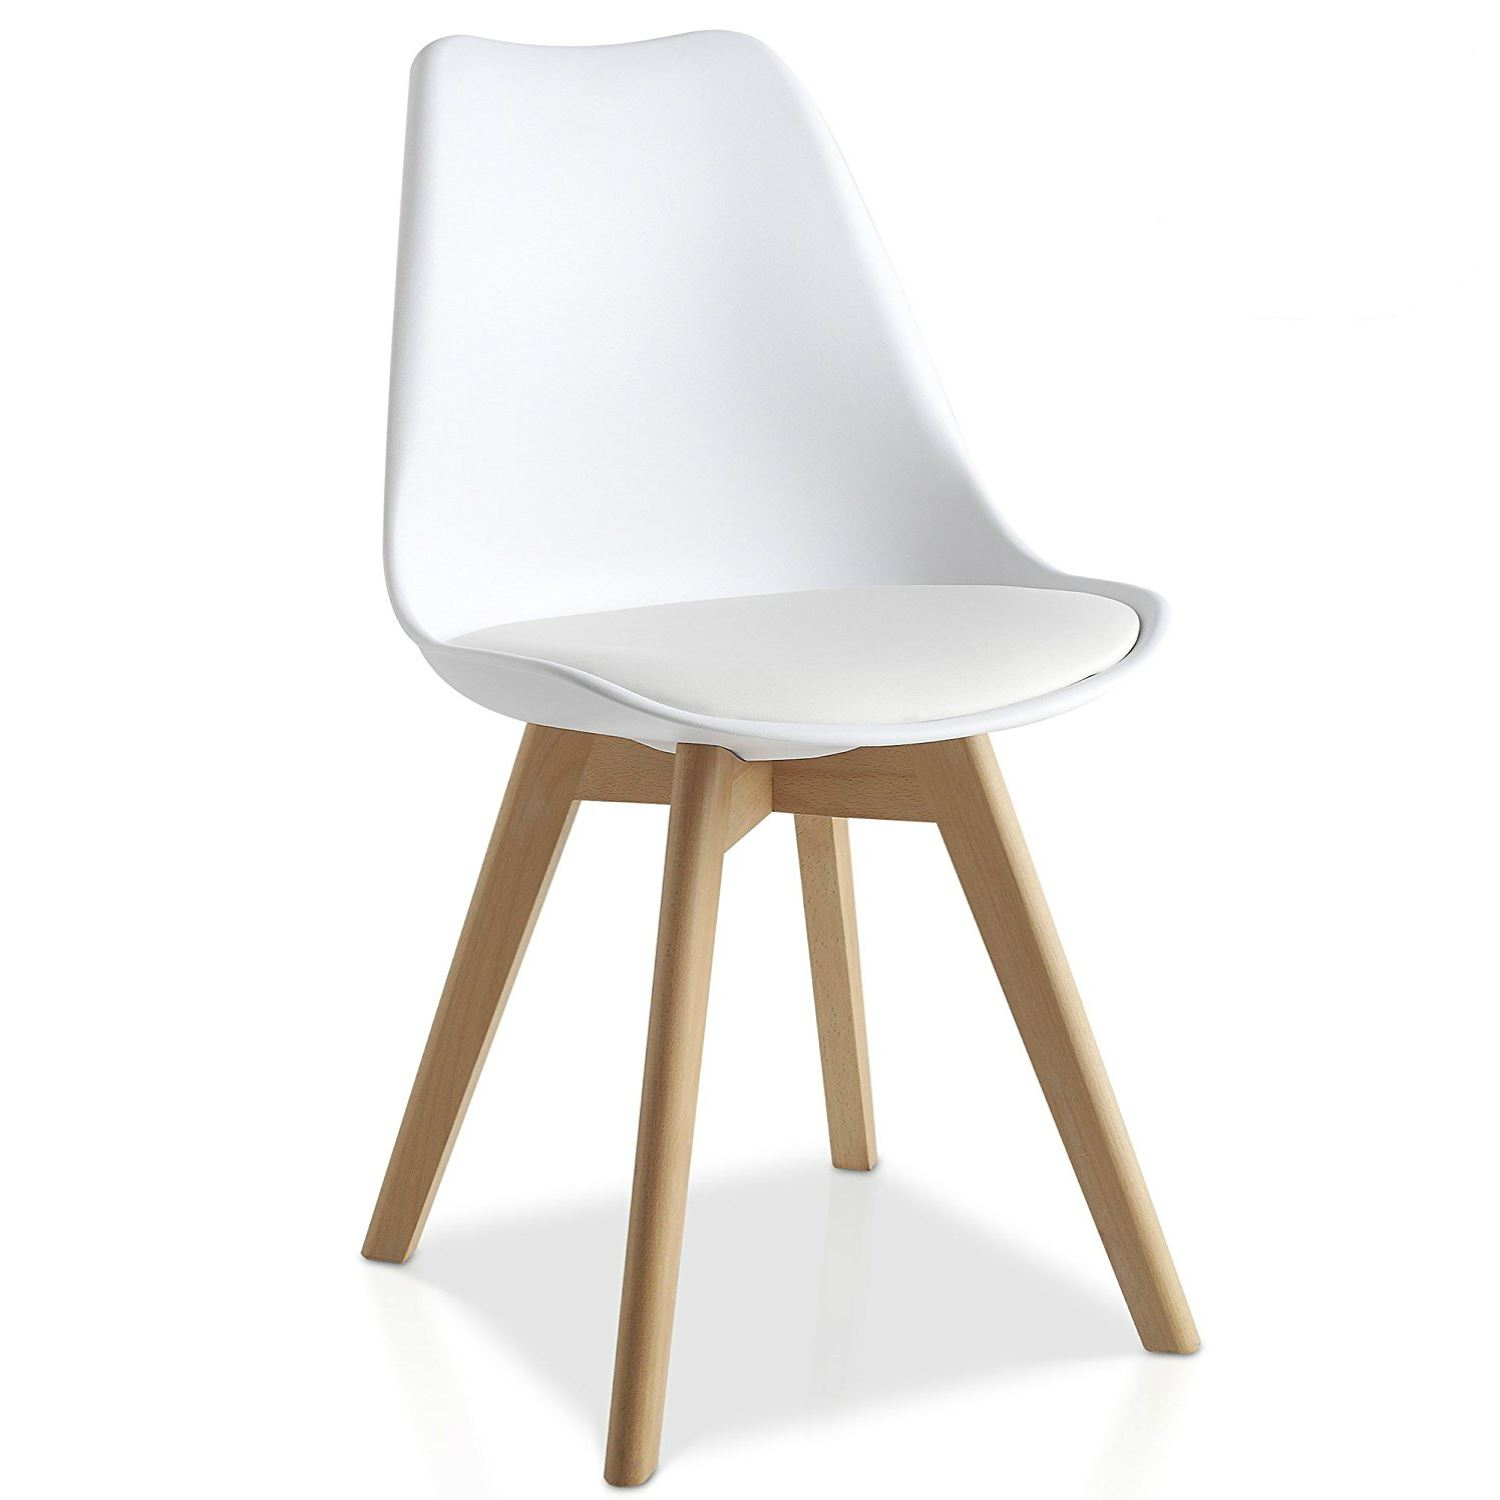 Tulip Dining Chair With Solid Wood Legs PU Leather Cushion ...